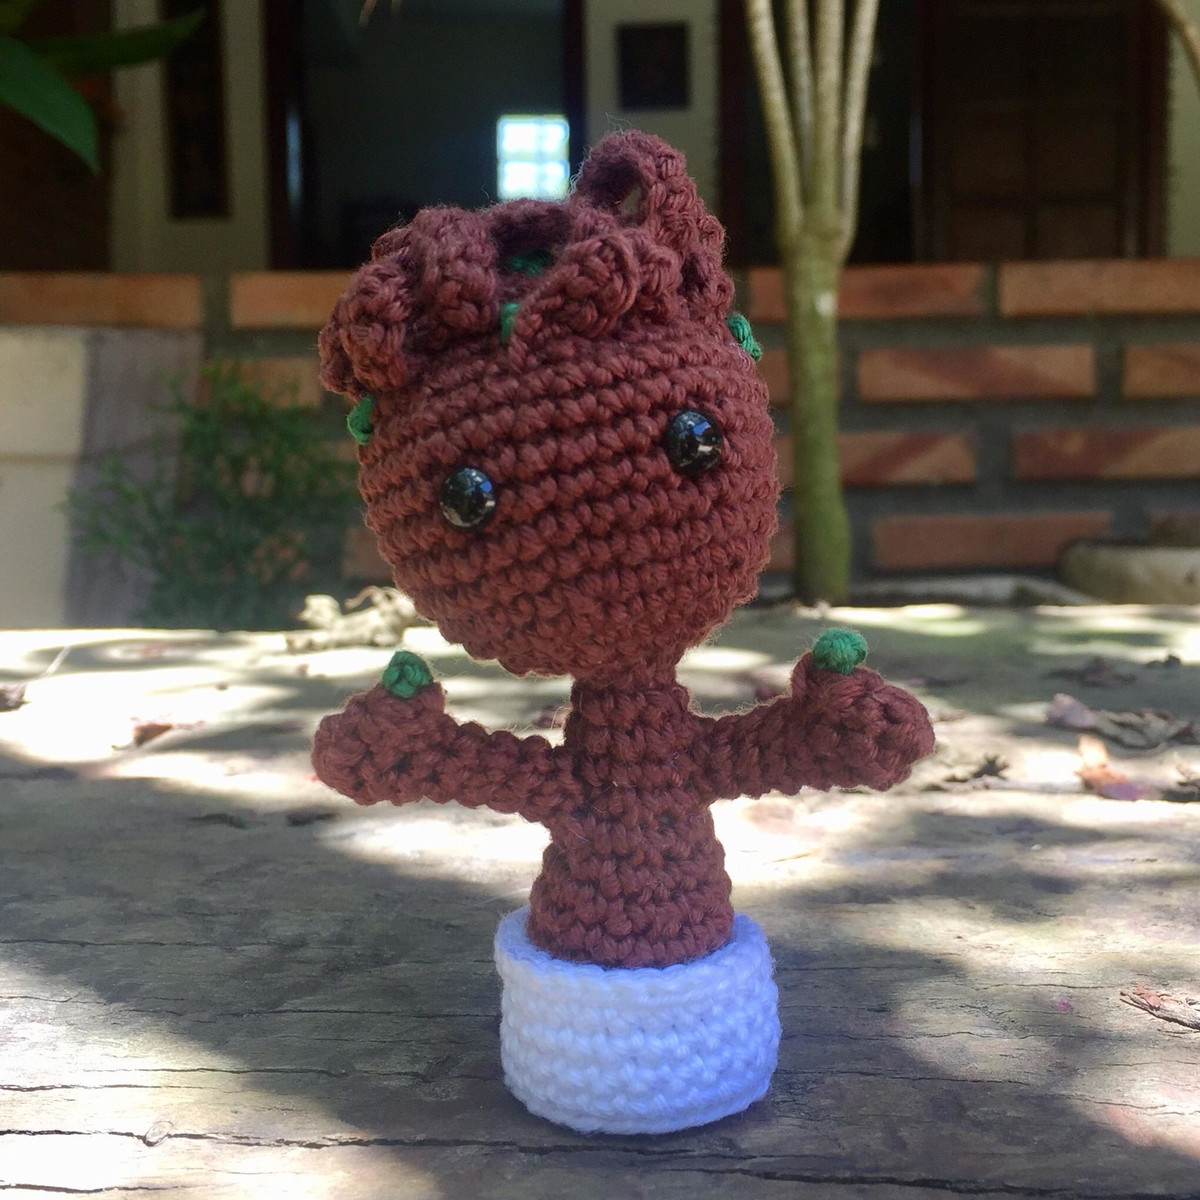 Crochet Potted Baby Groot Free Patterns | Crochet dolls, Cute ... | 1200x1200